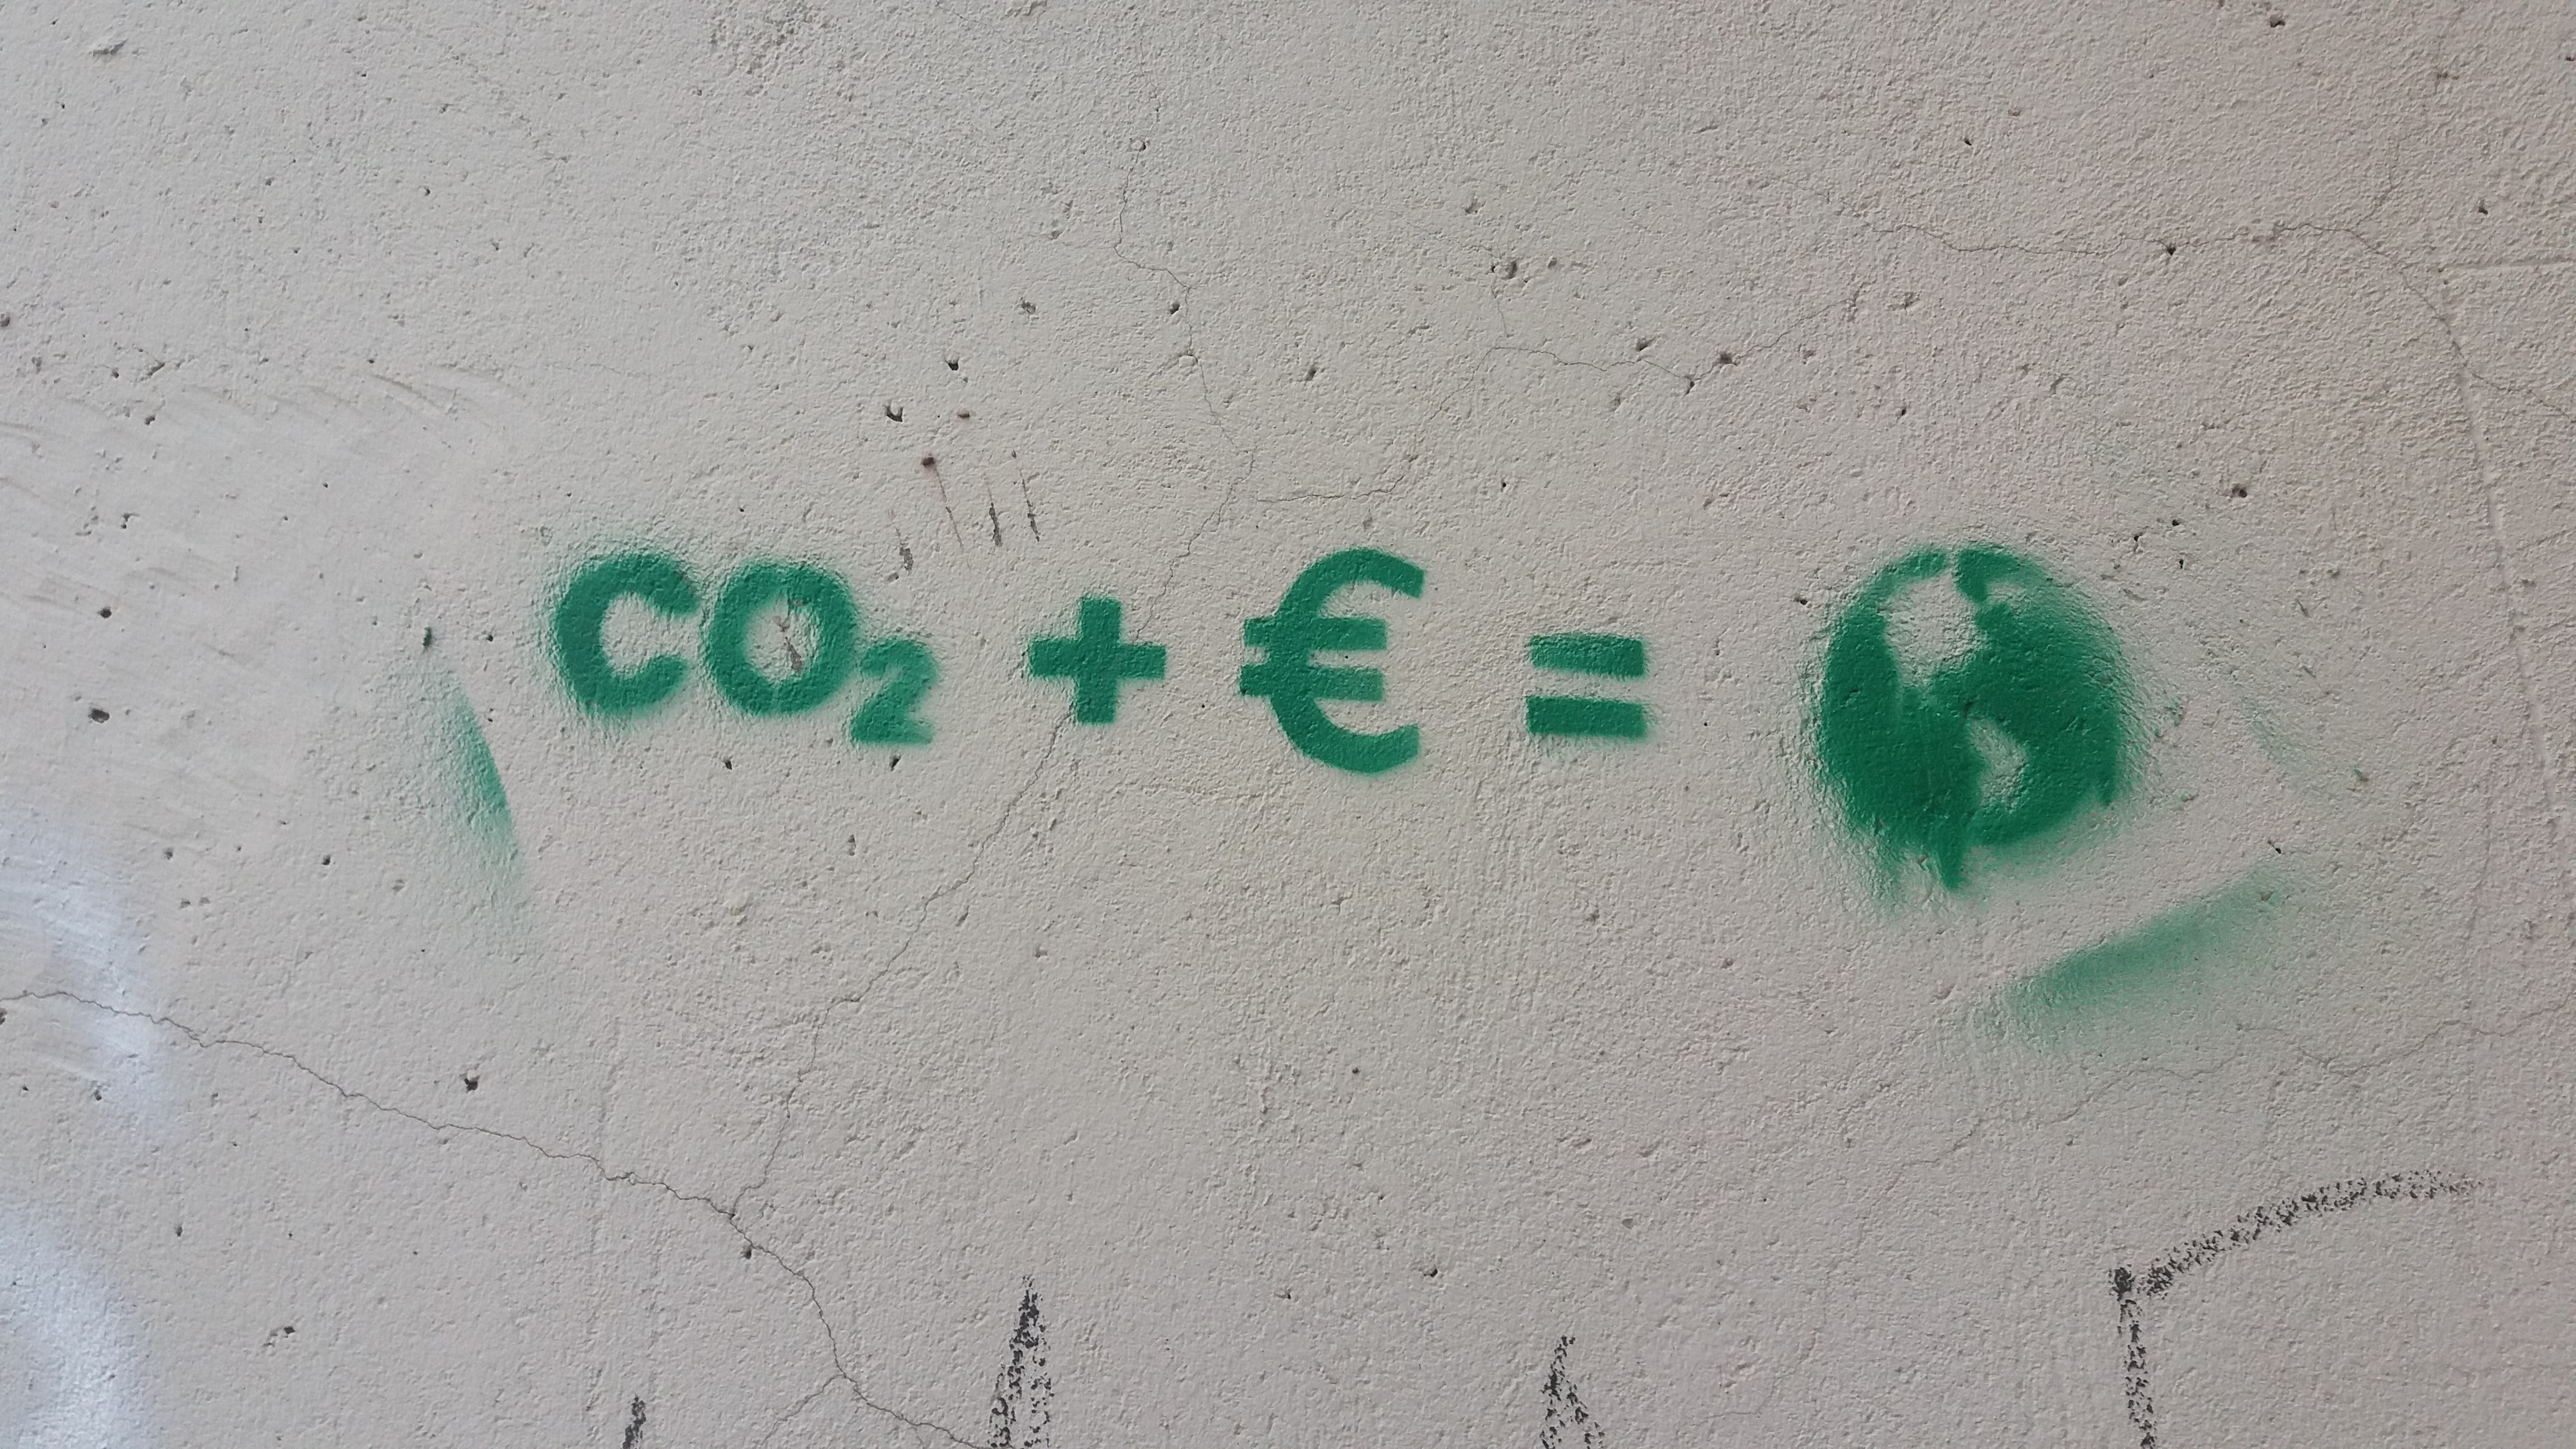 Co2 + E = wall text